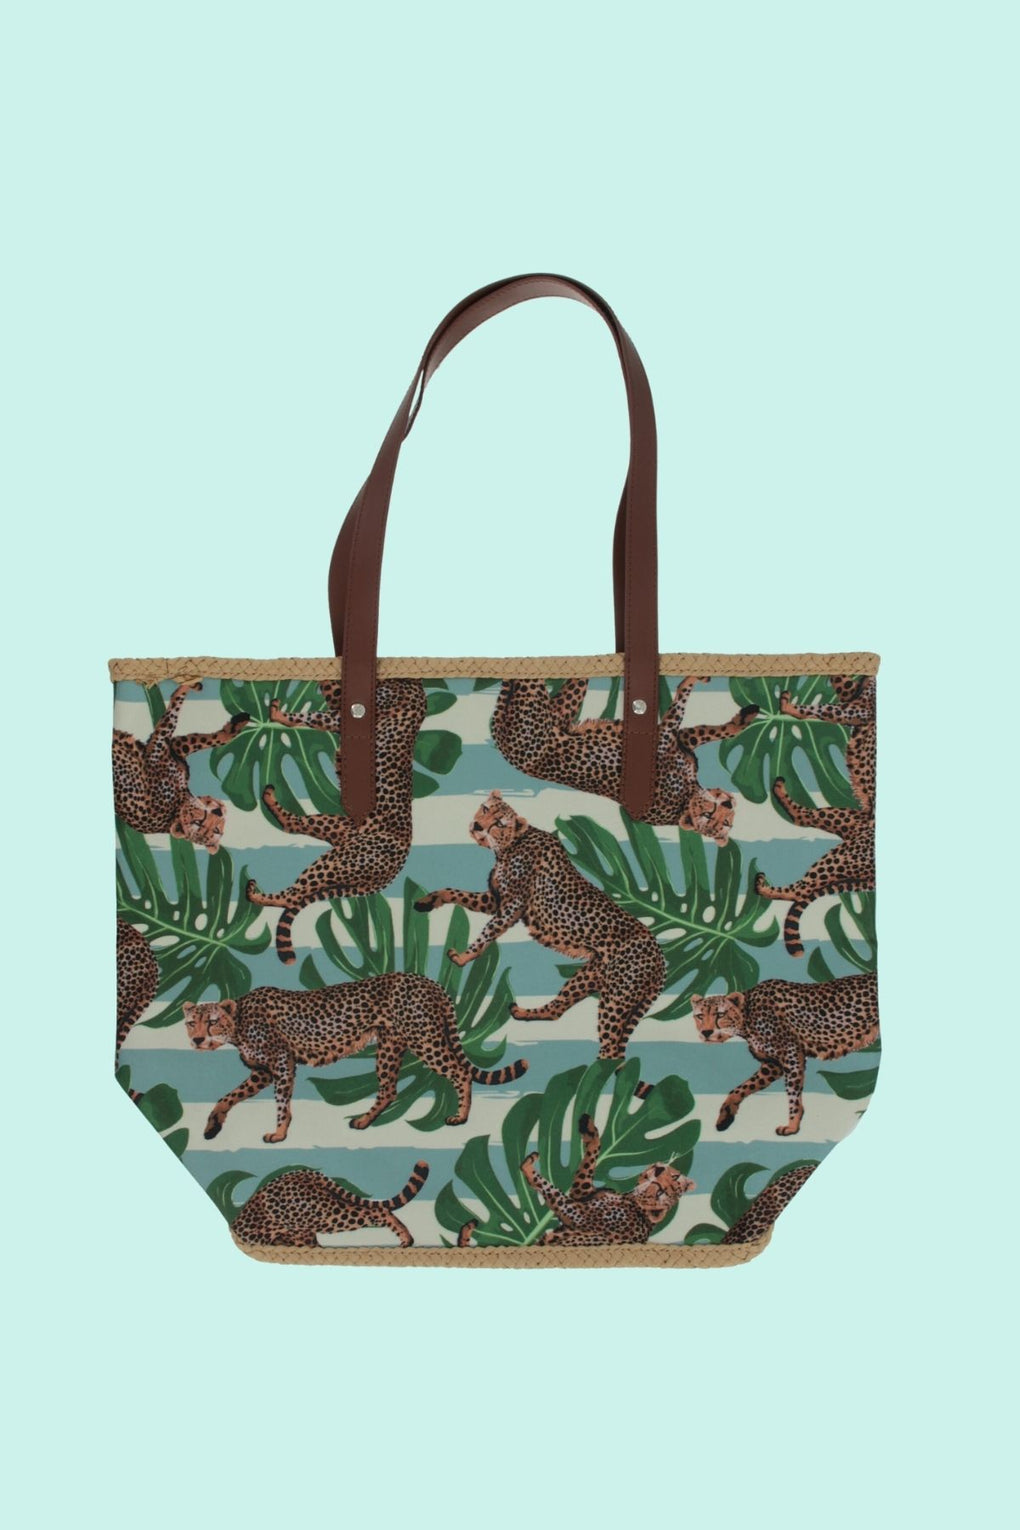 Roaming Tigers On Leaves Tote (MH-1034-Multi Green)